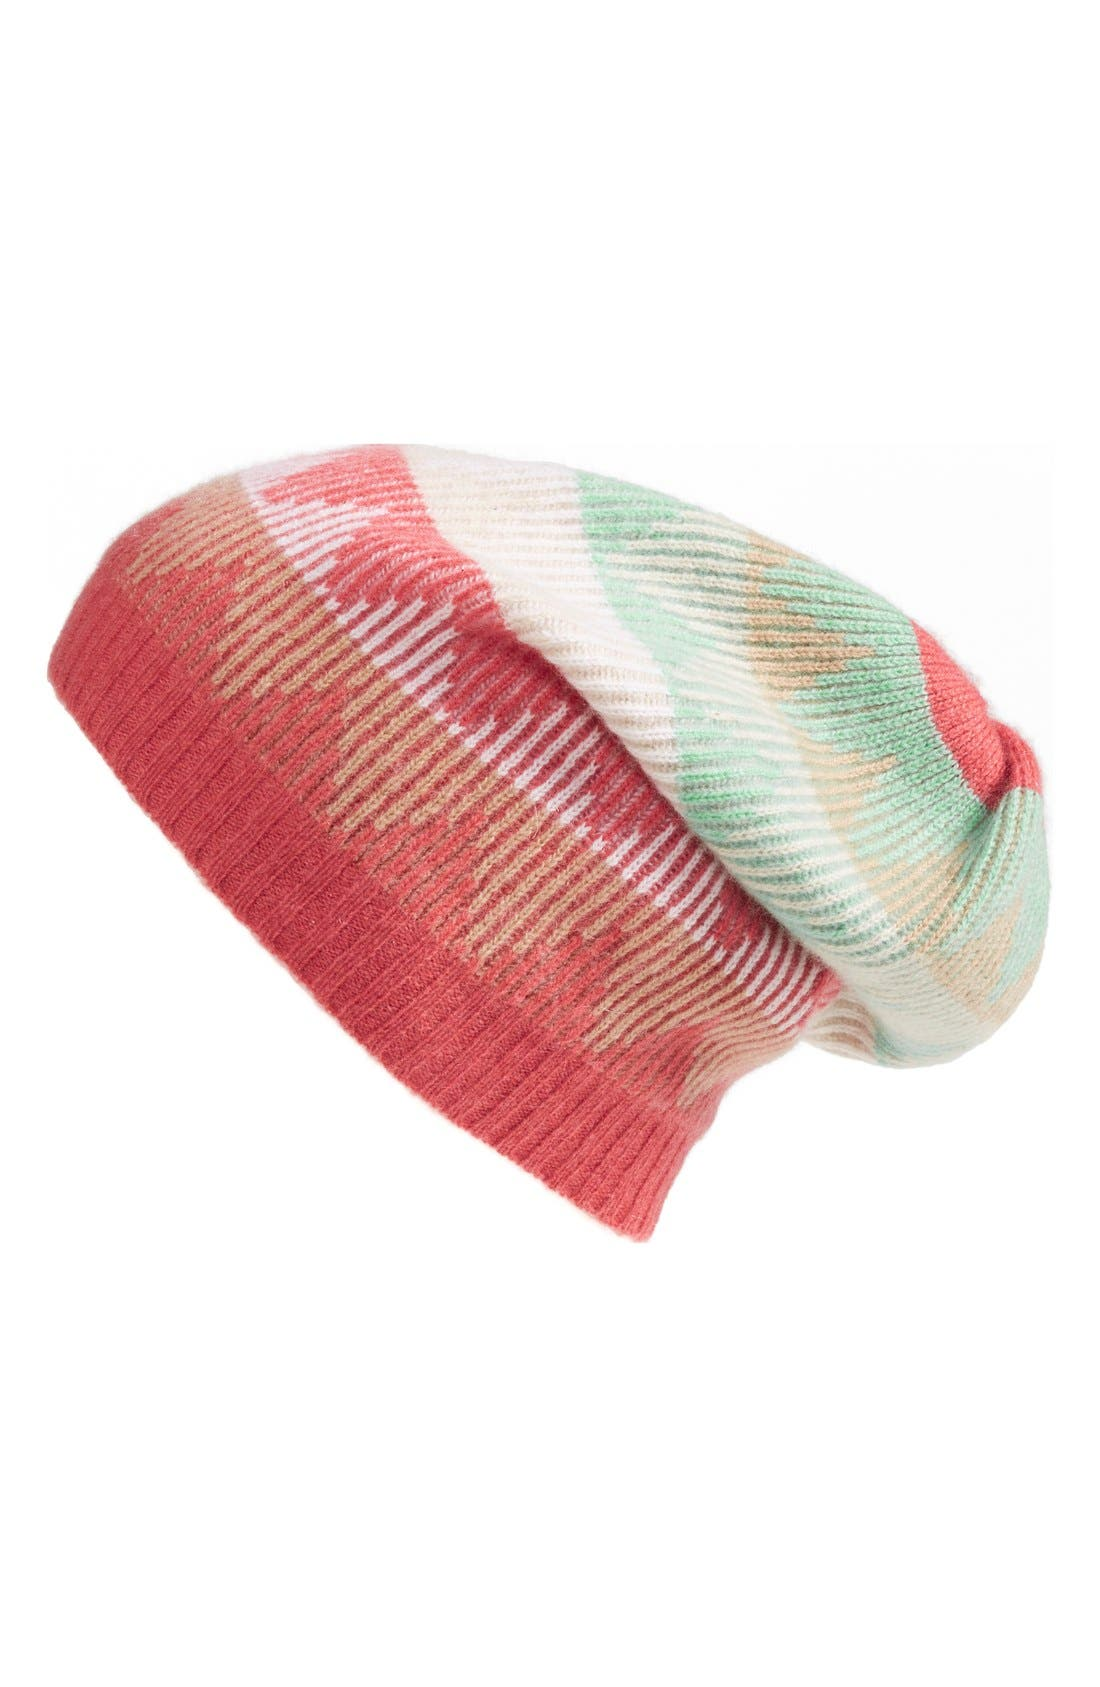 Alternate Image 1 Selected - Made of Me Zigzag Slouchy Cashmere Beanie